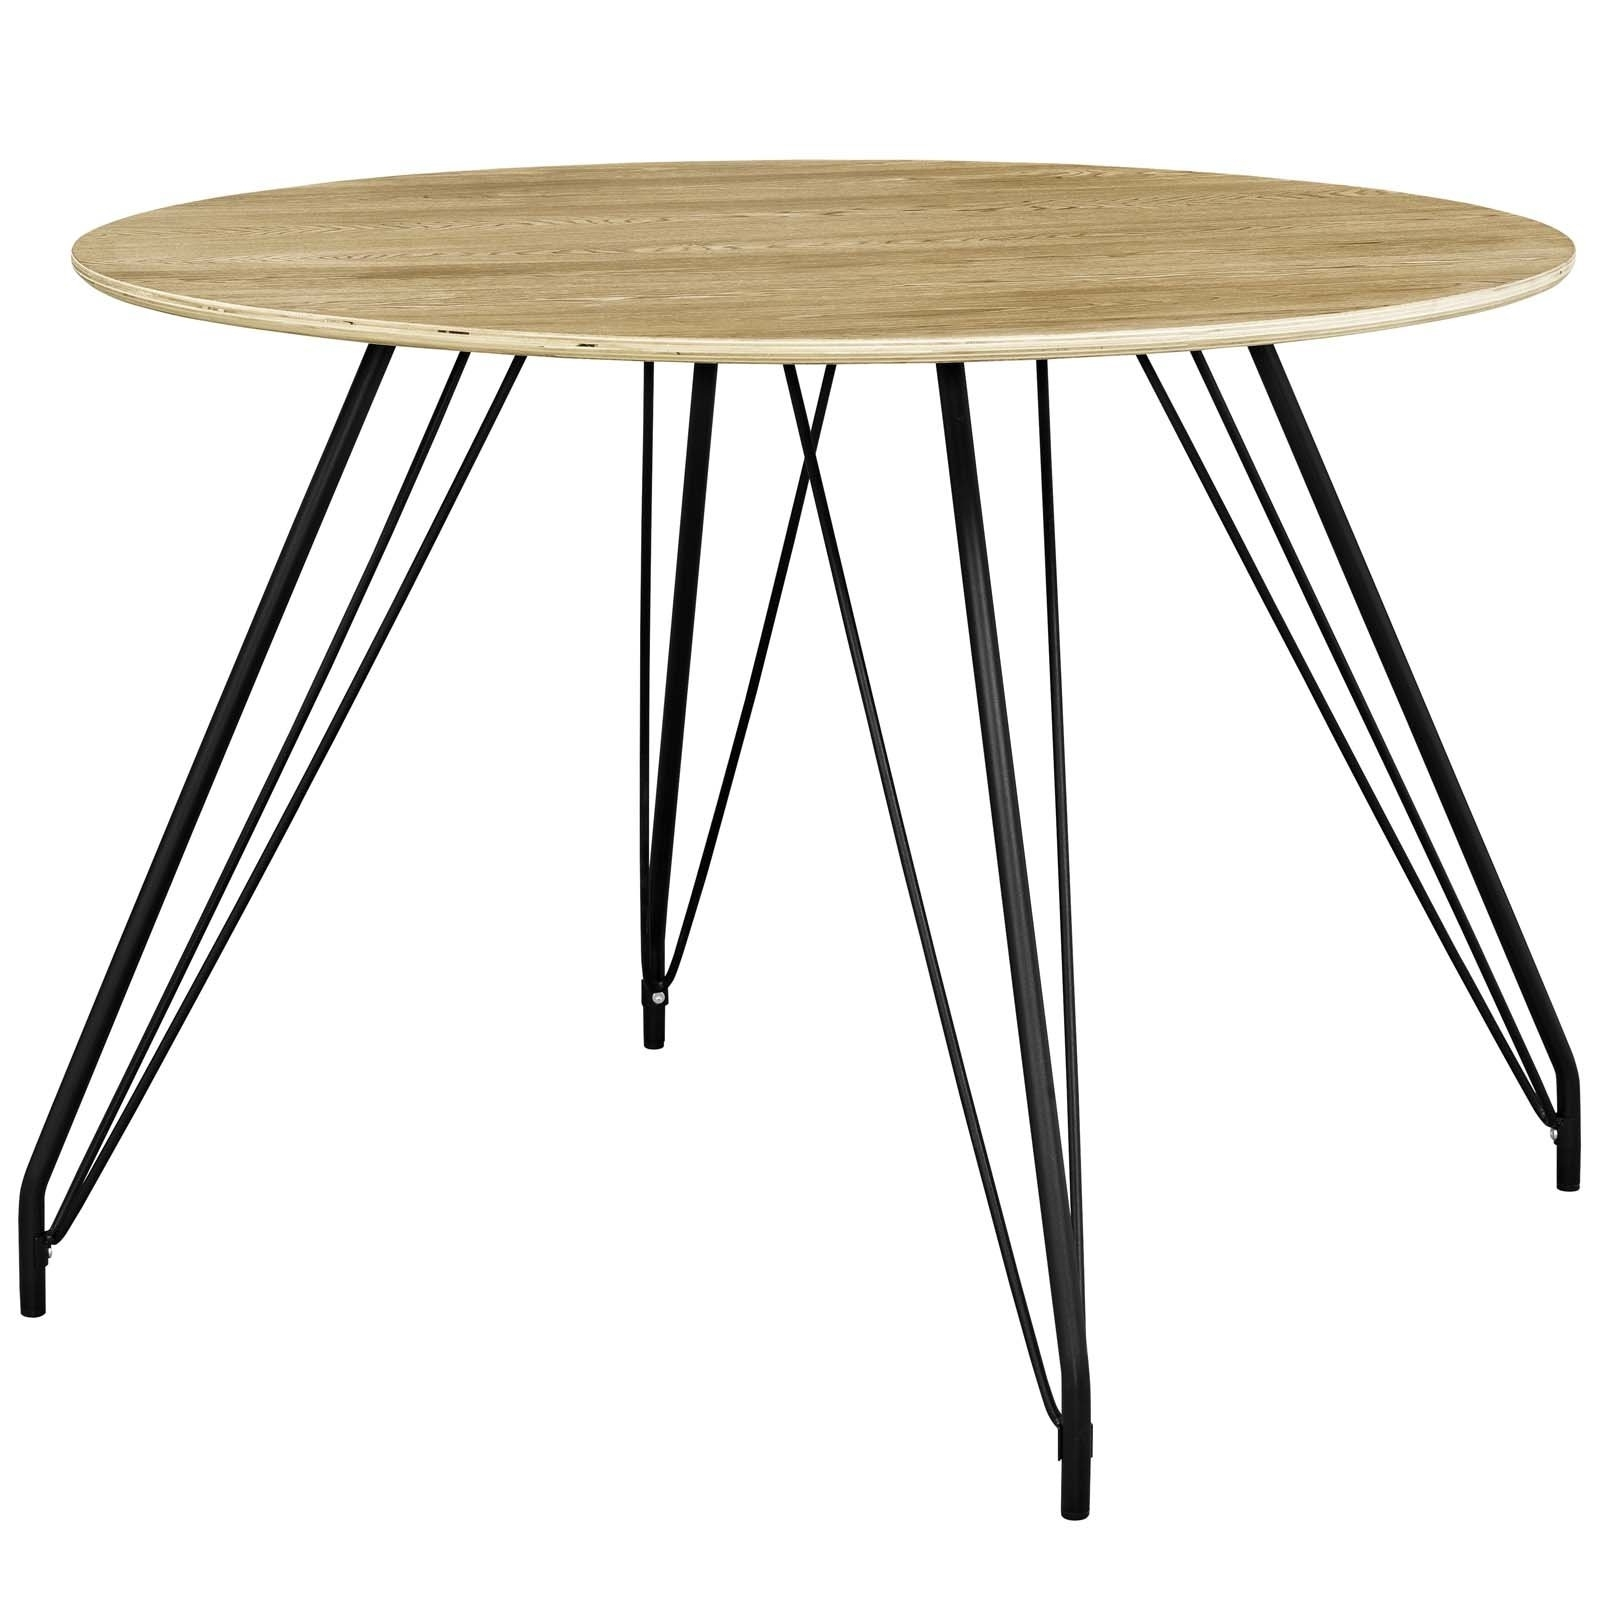 Fashionable Circular Dining Tables Regarding Foundry Select Cayman Circular Dining Table (View 16 of 25)